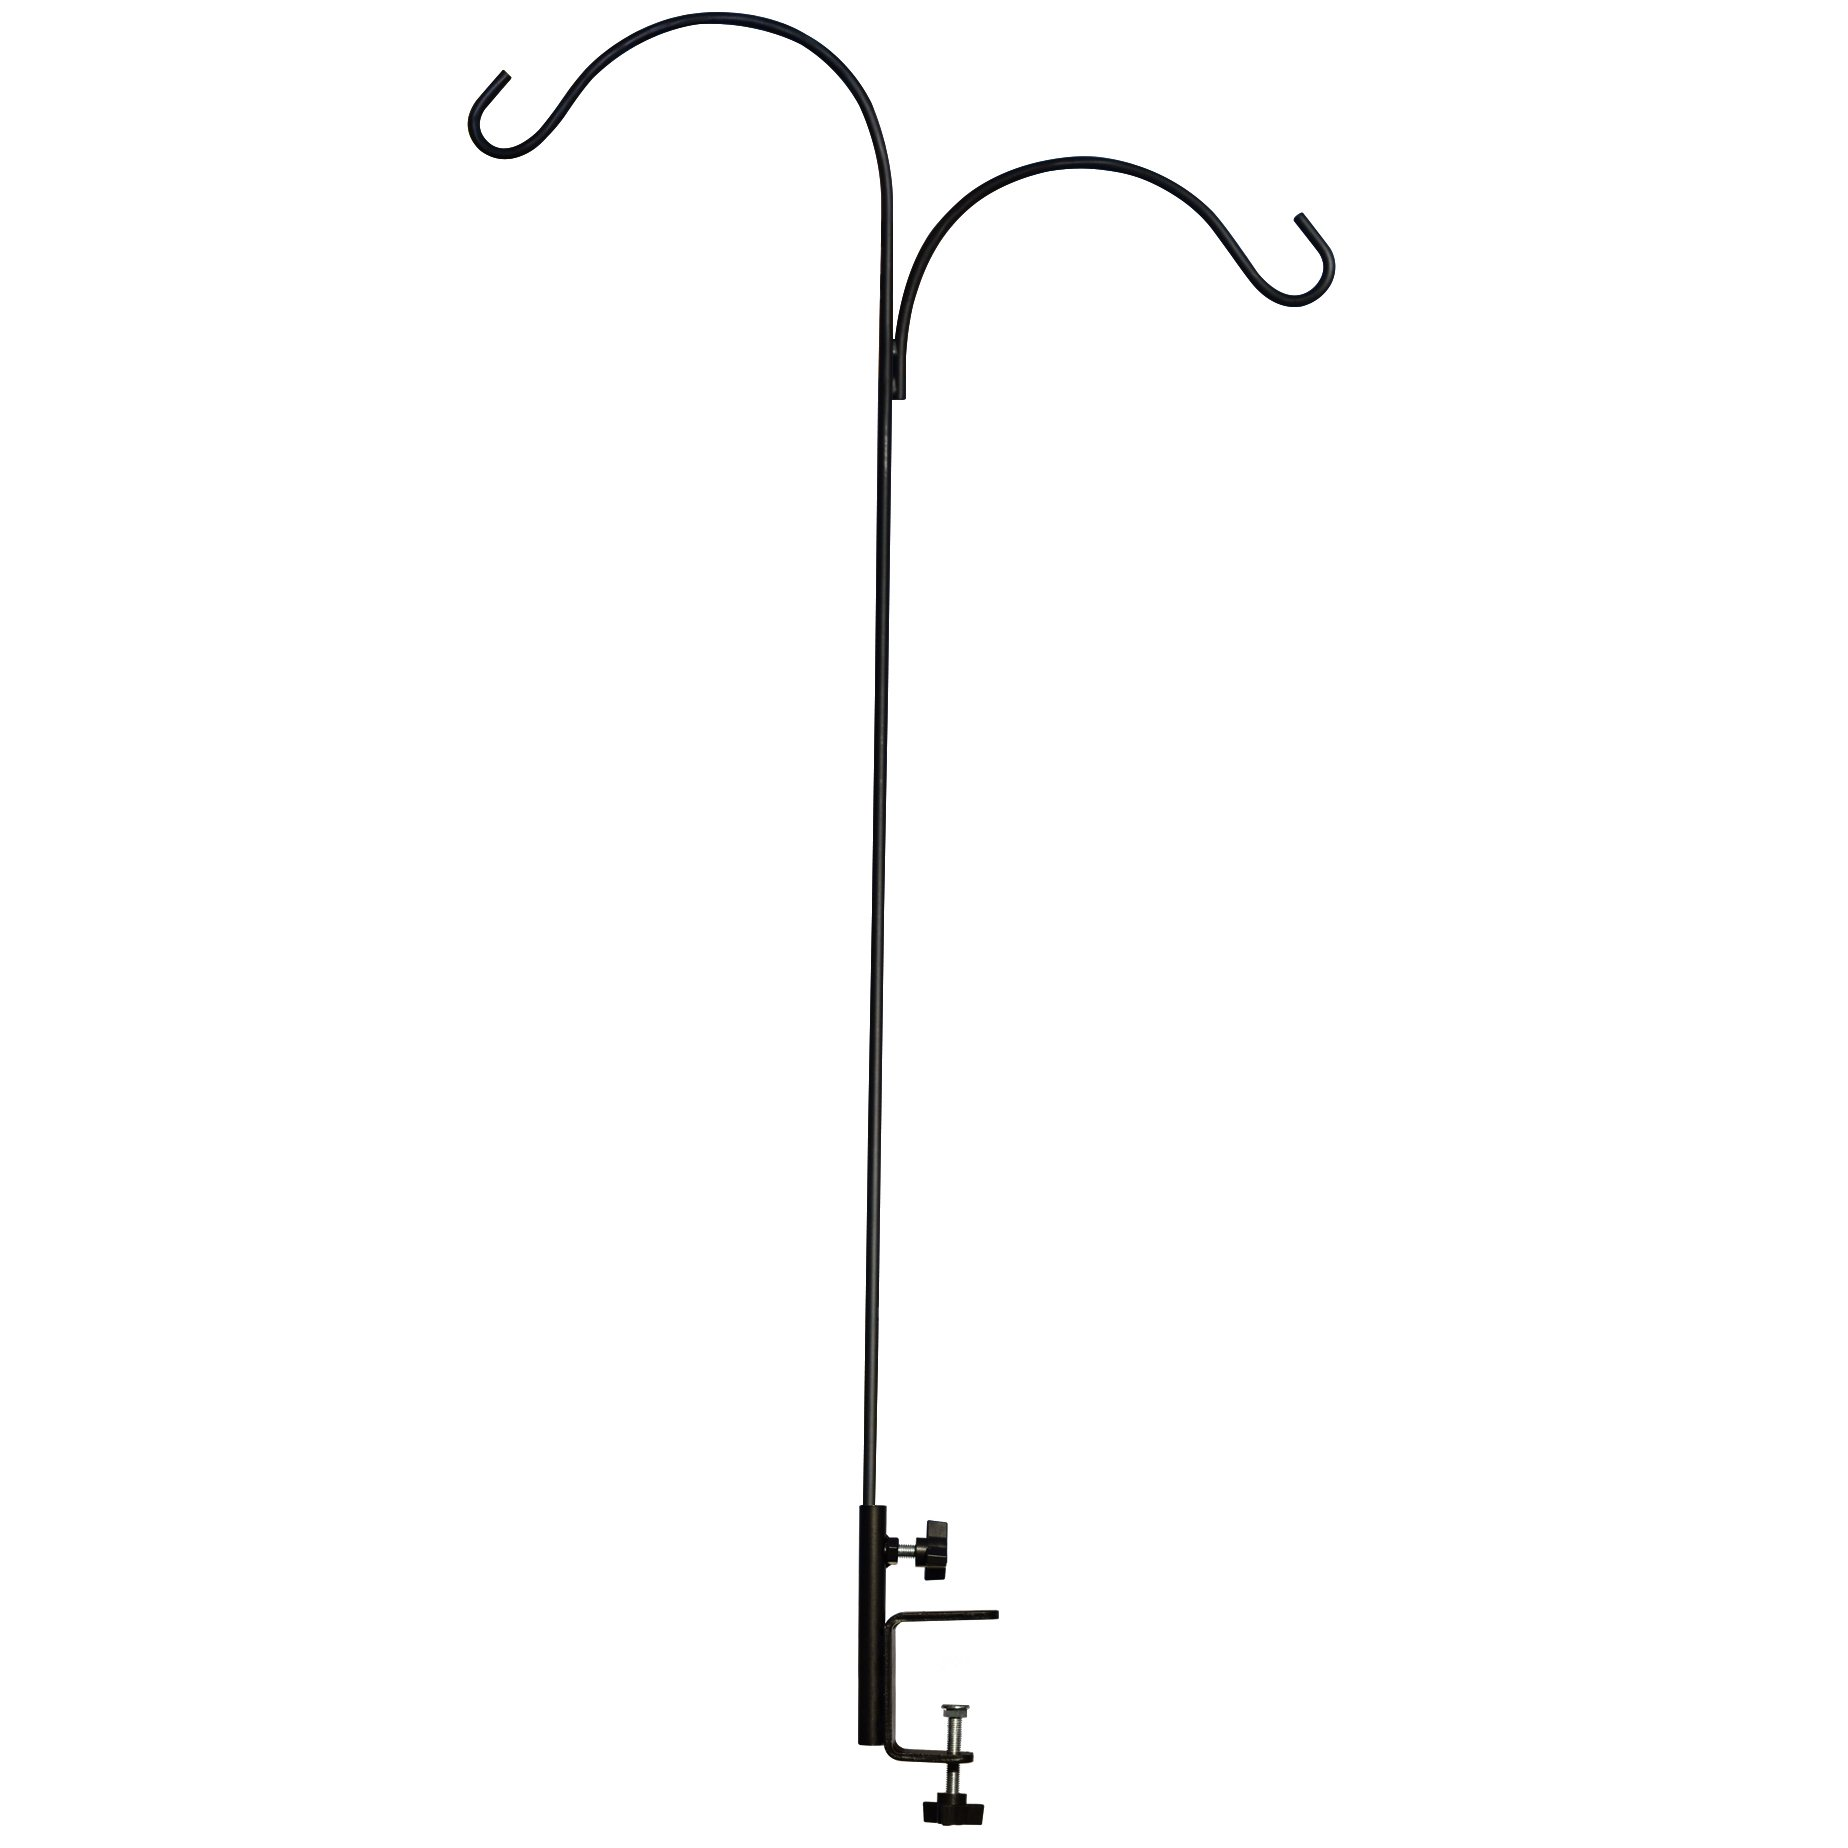 GrayBunny GB-6859 Vertical Deck Hook, 3'' Clamp, 360 Degree Rotation, 46'' Tall Handrail Pole, Double Hook, For Bird Feeders, Birdhouses, Planters, Suet Baskets, Lanterns, Wind Chimes, Potted Plants